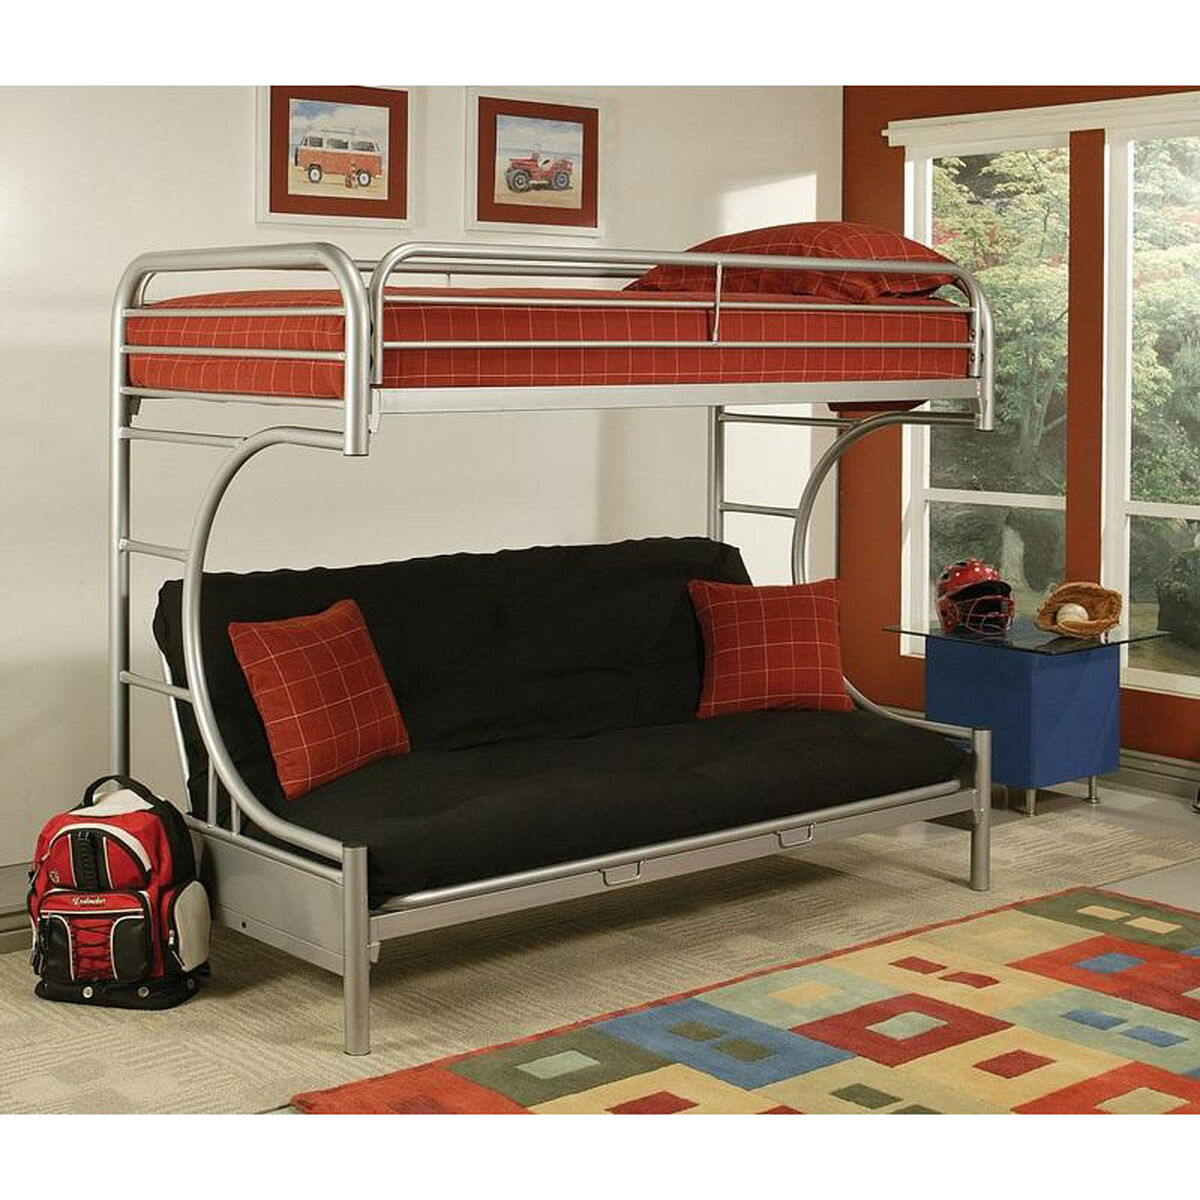 Our Eclipse Xl Twin Over Queen Futon C Style Metal Bunk Bed With Built